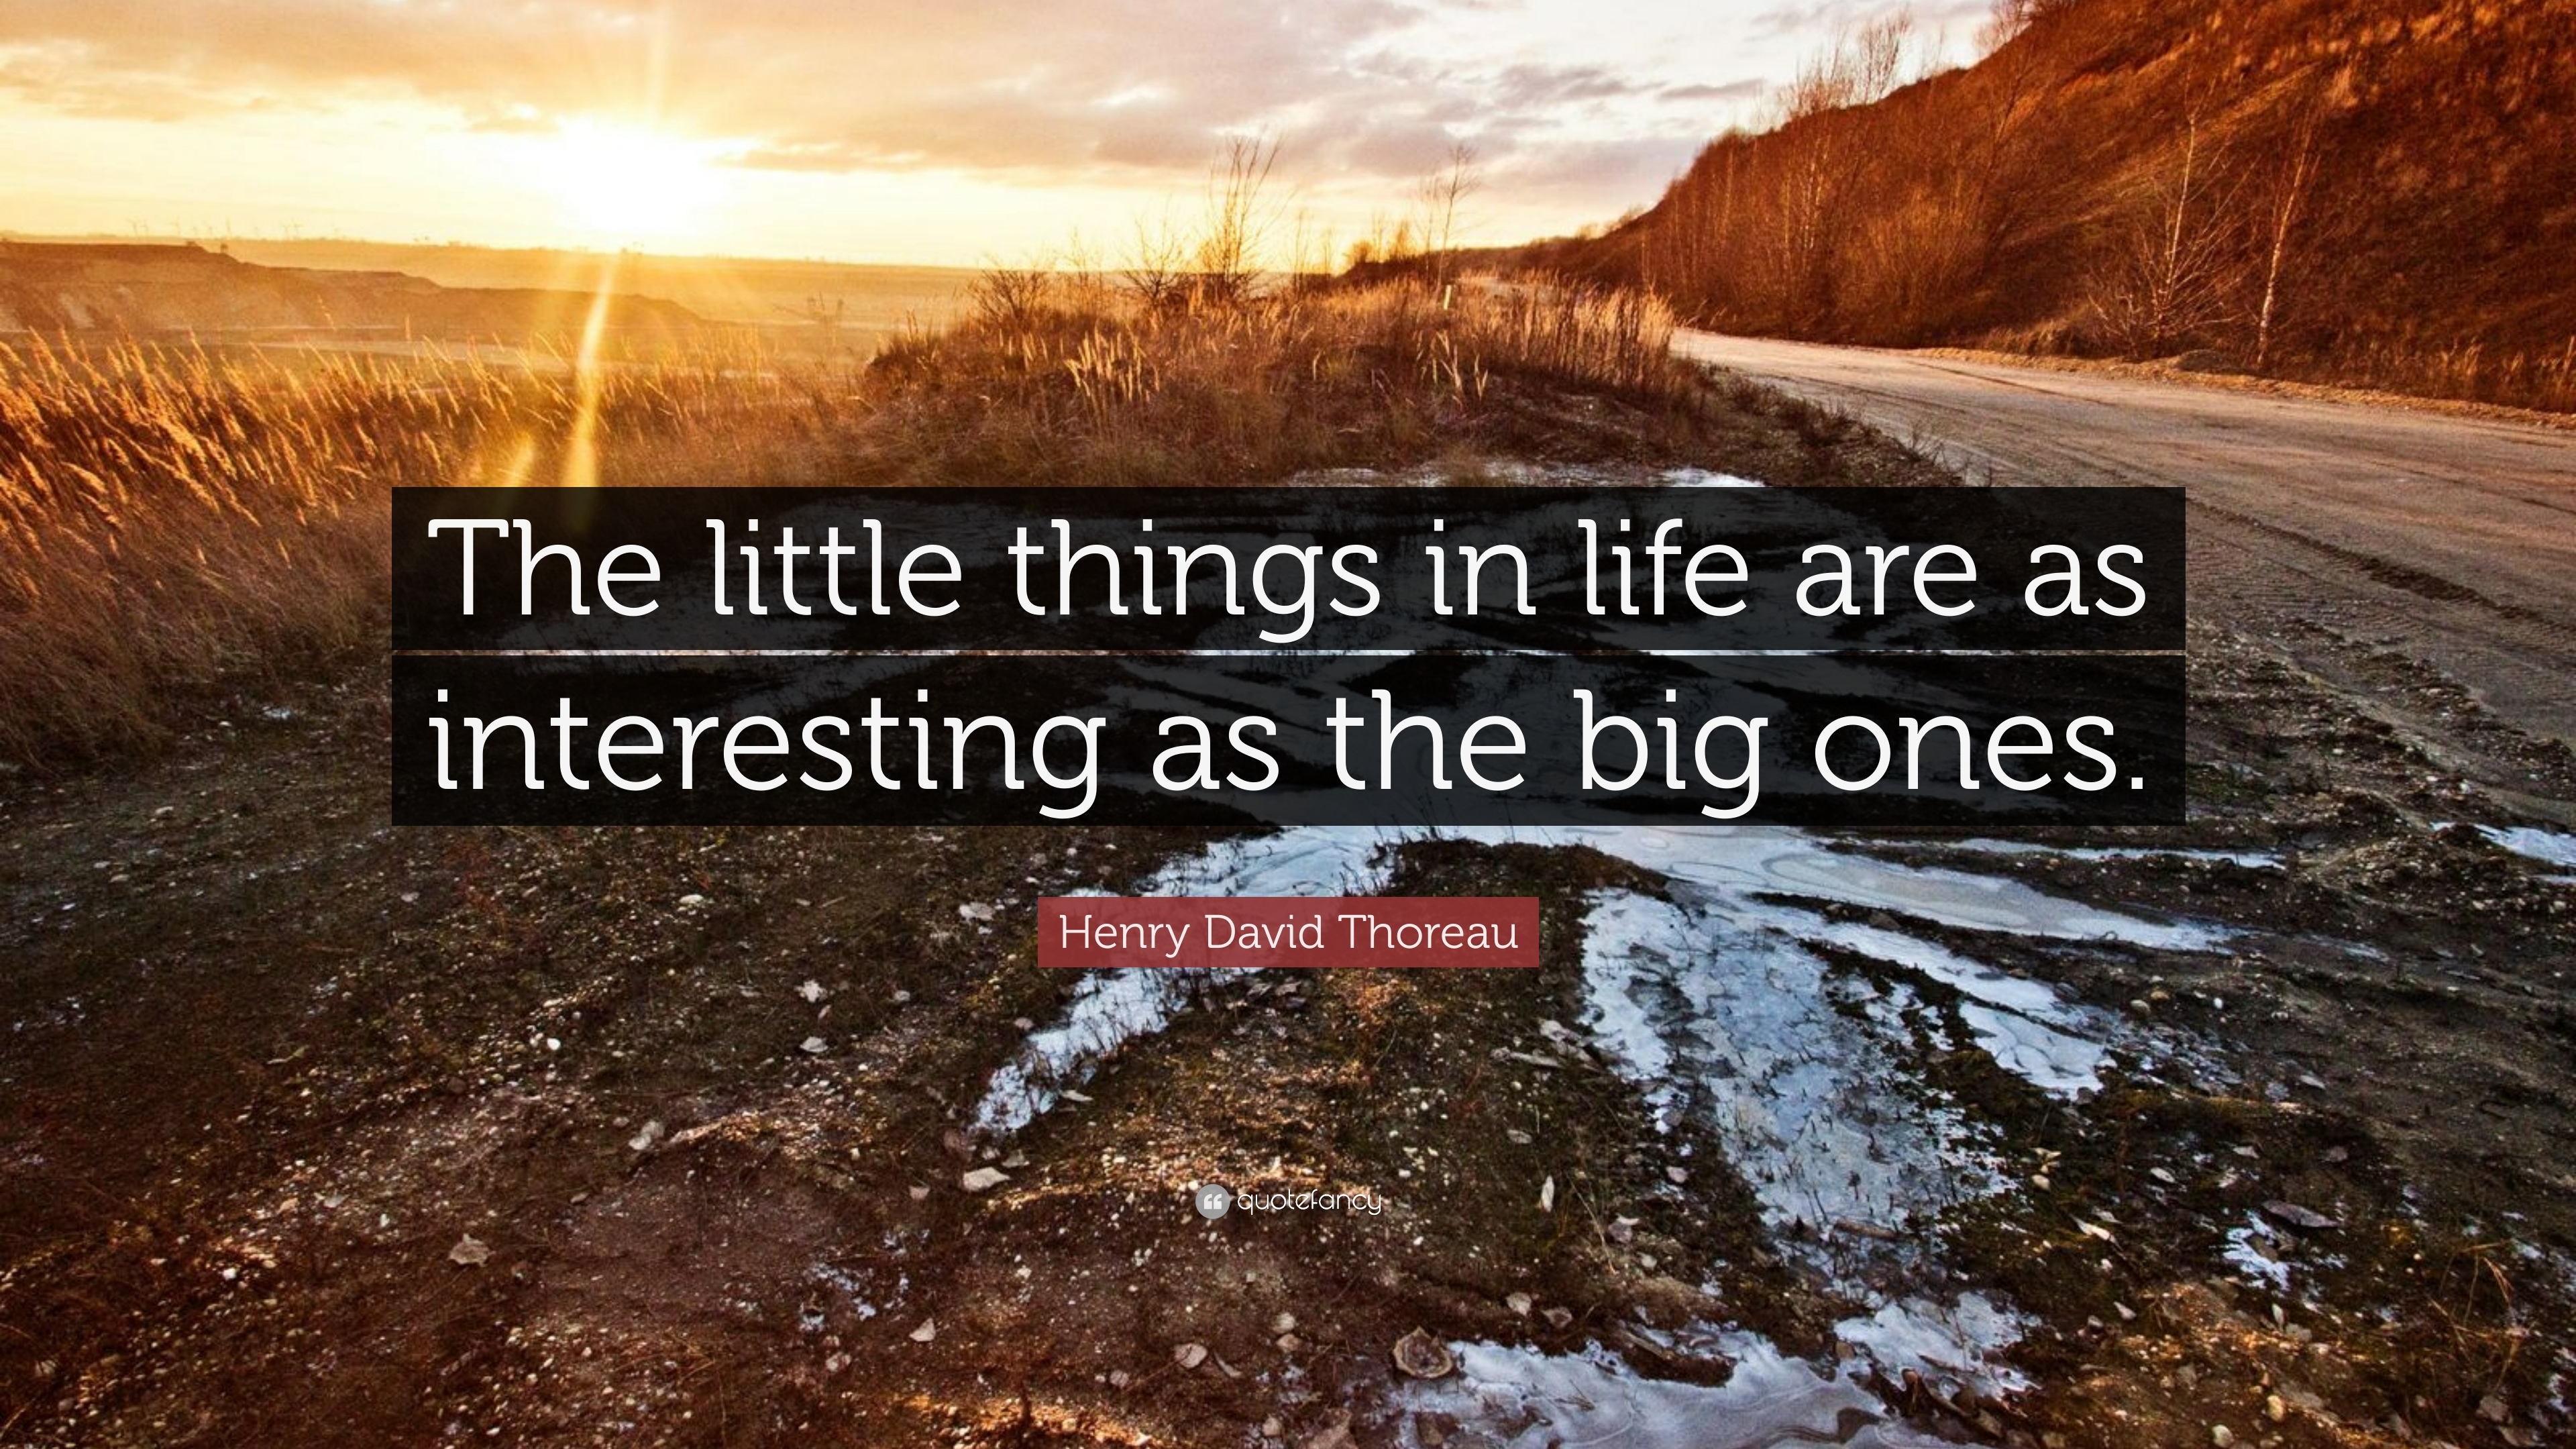 Henry David Thoreau Quote The Little Things In Life Are As